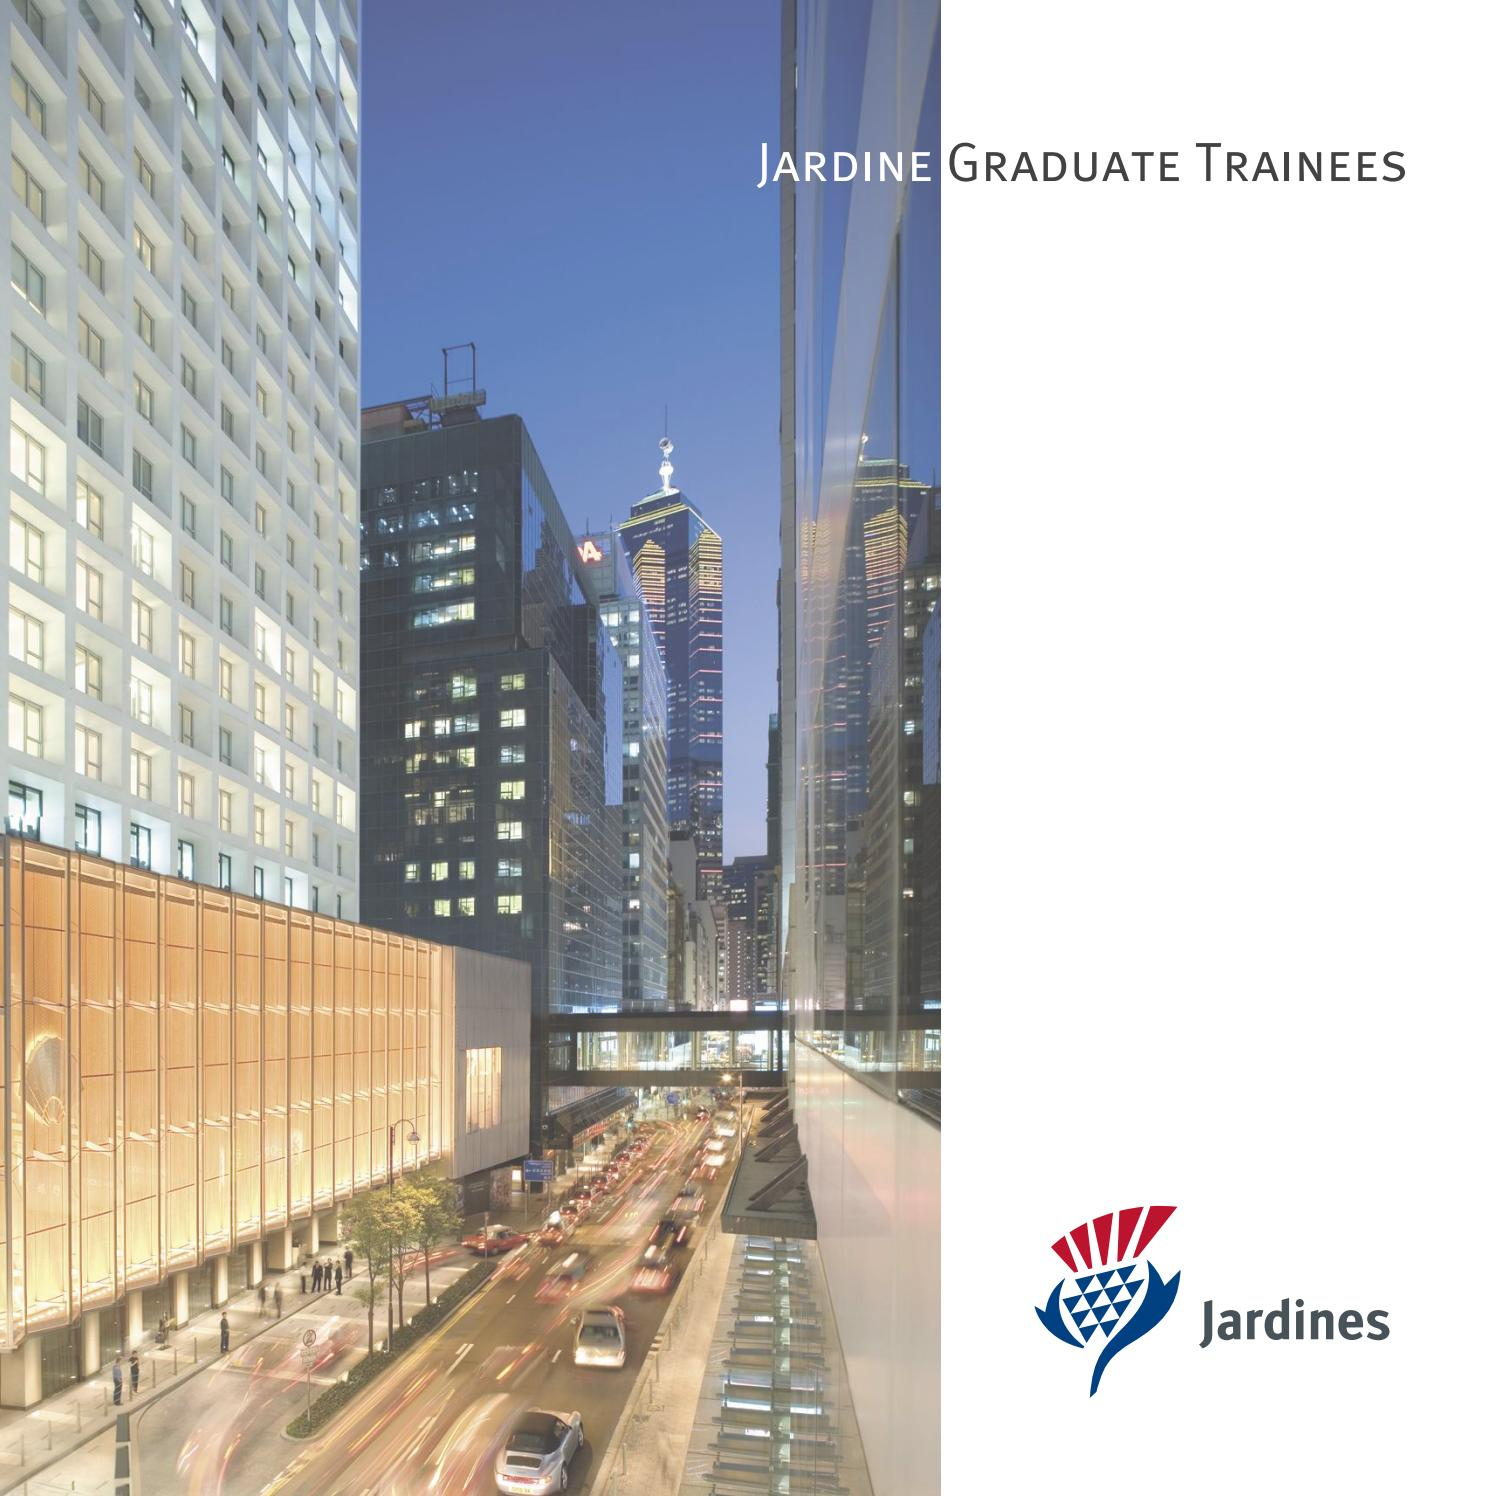 Jardine Matheson In Chinese: Jardine Graduate Trainee Brochure By Jardine Matheson